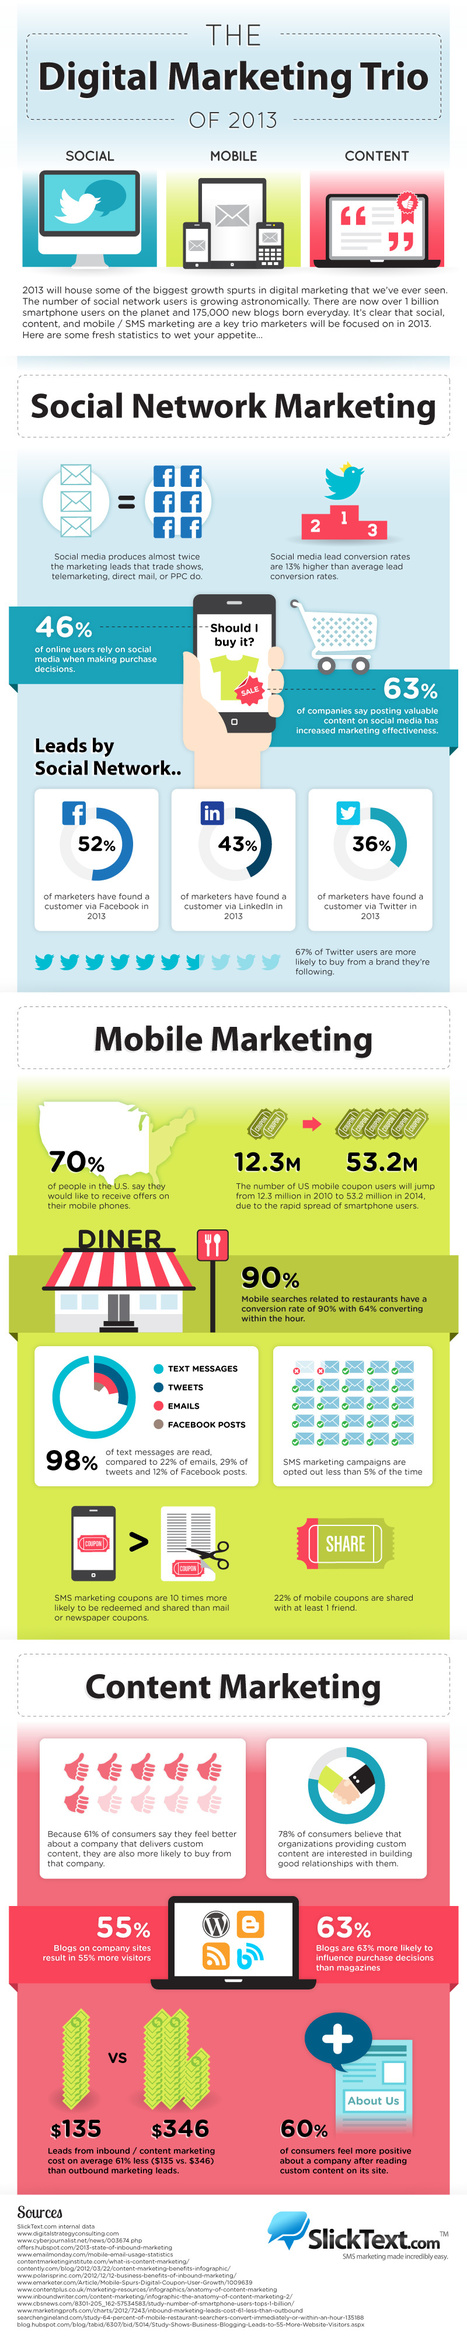 Social, Mobile, Content – The Digital Marketing Trio Of 2013 [INFOGRAPHIC] - AllTwitter | Marketing_me | Scoop.it